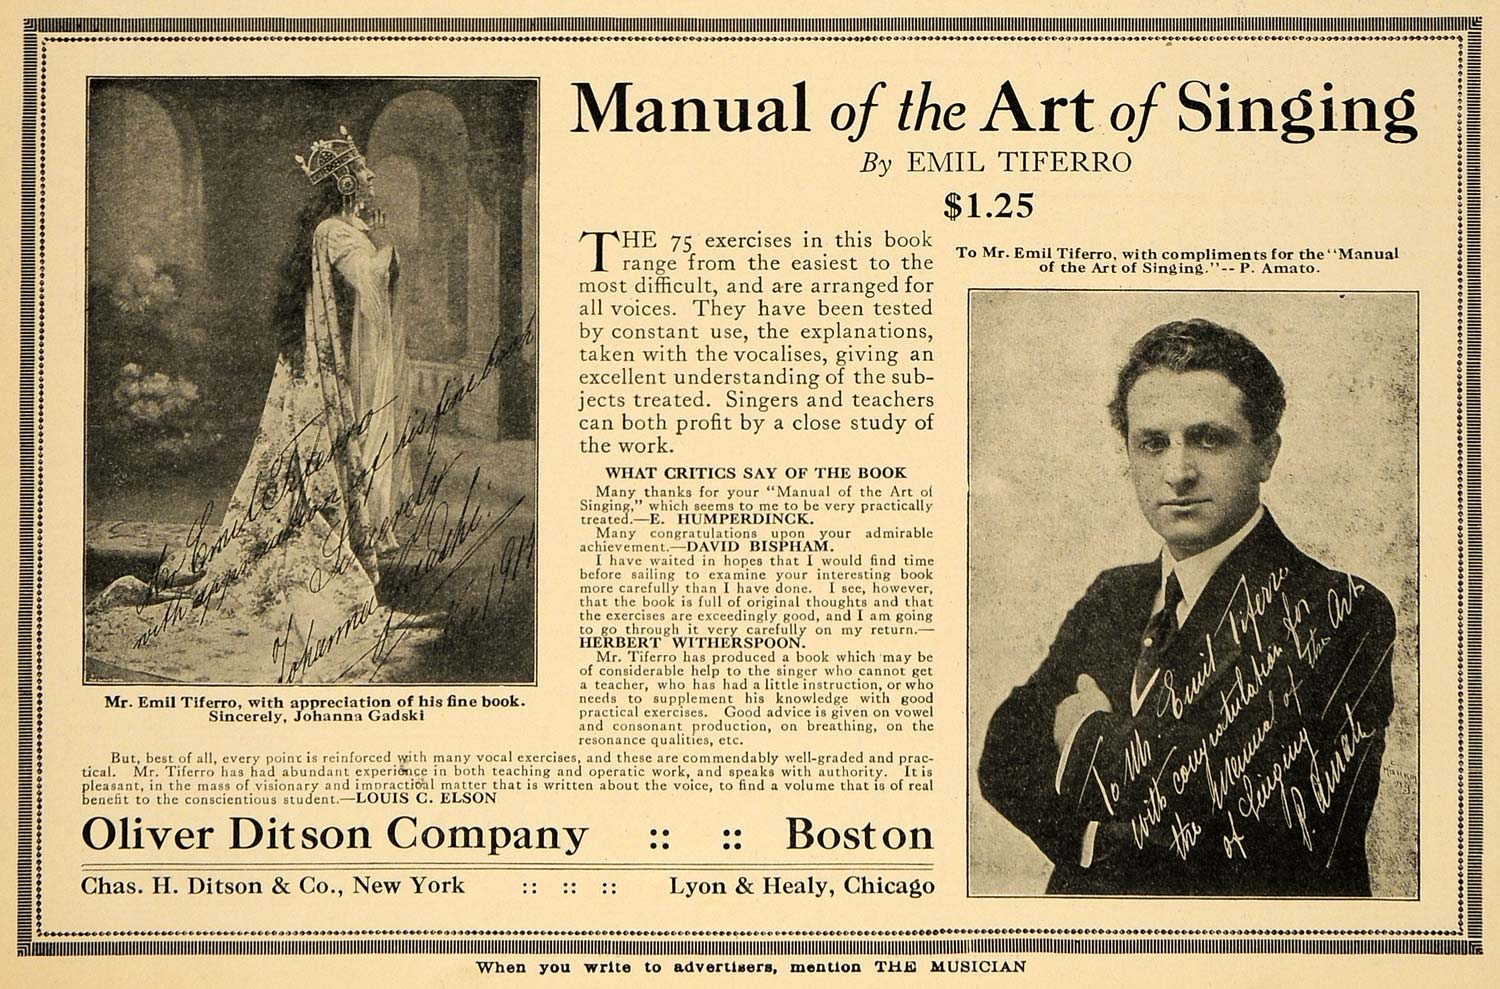 1915 Ad Emil Tiferro Manual Art Singing Oliver Ditson - ORIGINAL MUS1